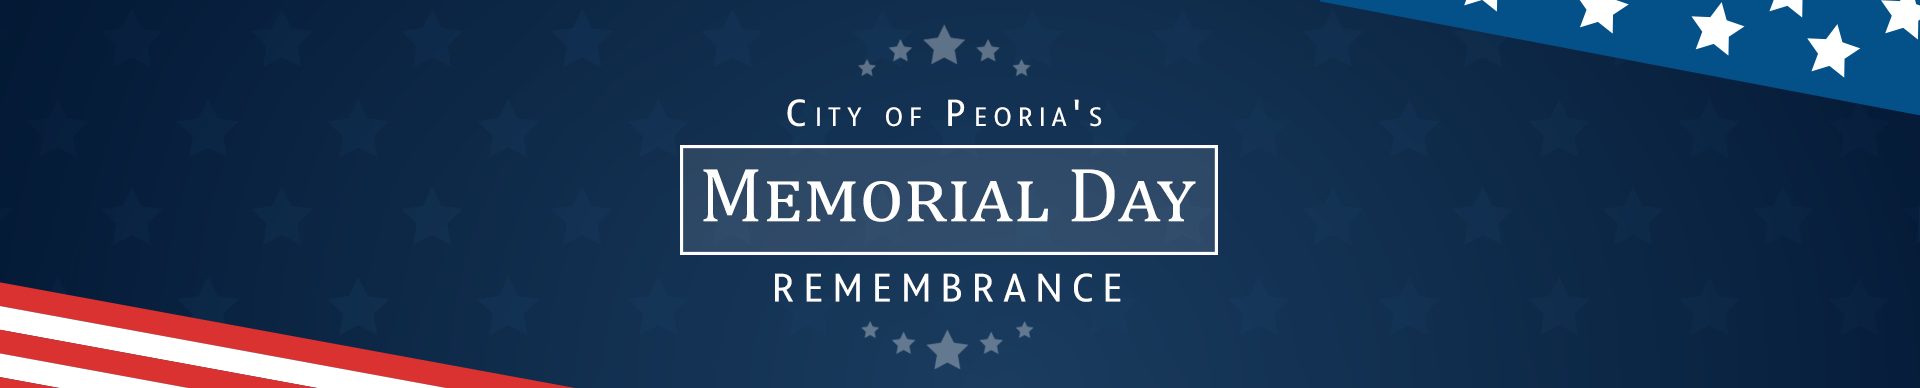 City of Peoria's Memorial Day Remembrance